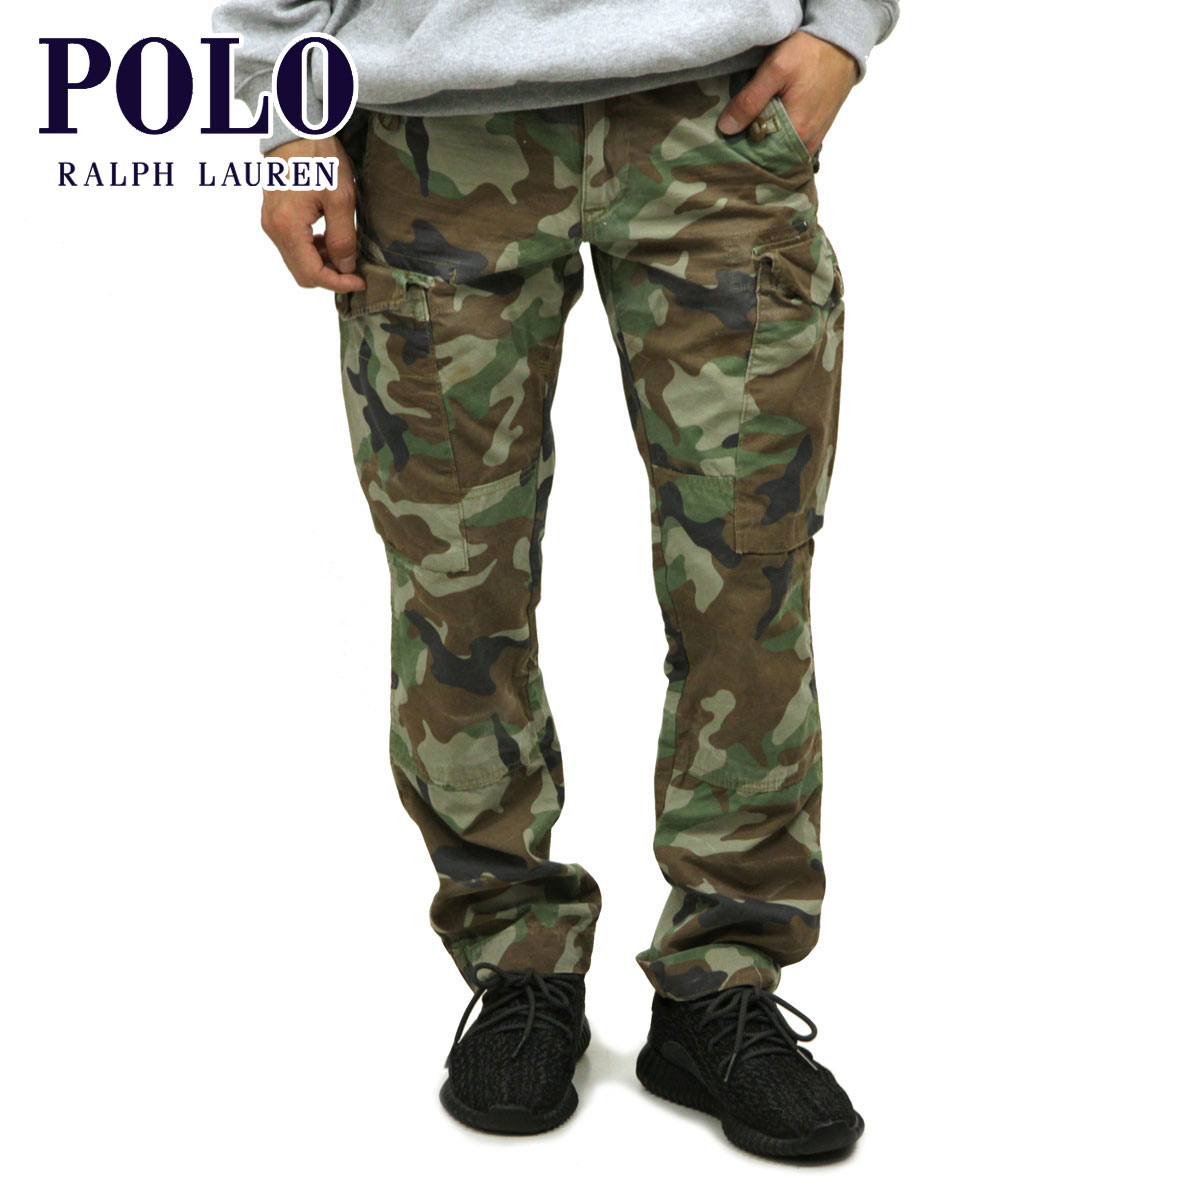 3f7cf62bdc Polo Ralph Lauren short pants men's regular article POLO RALPH LAUREN cargo  pant bottoms CAMOUFLAGE CARGO PANTS D20S30